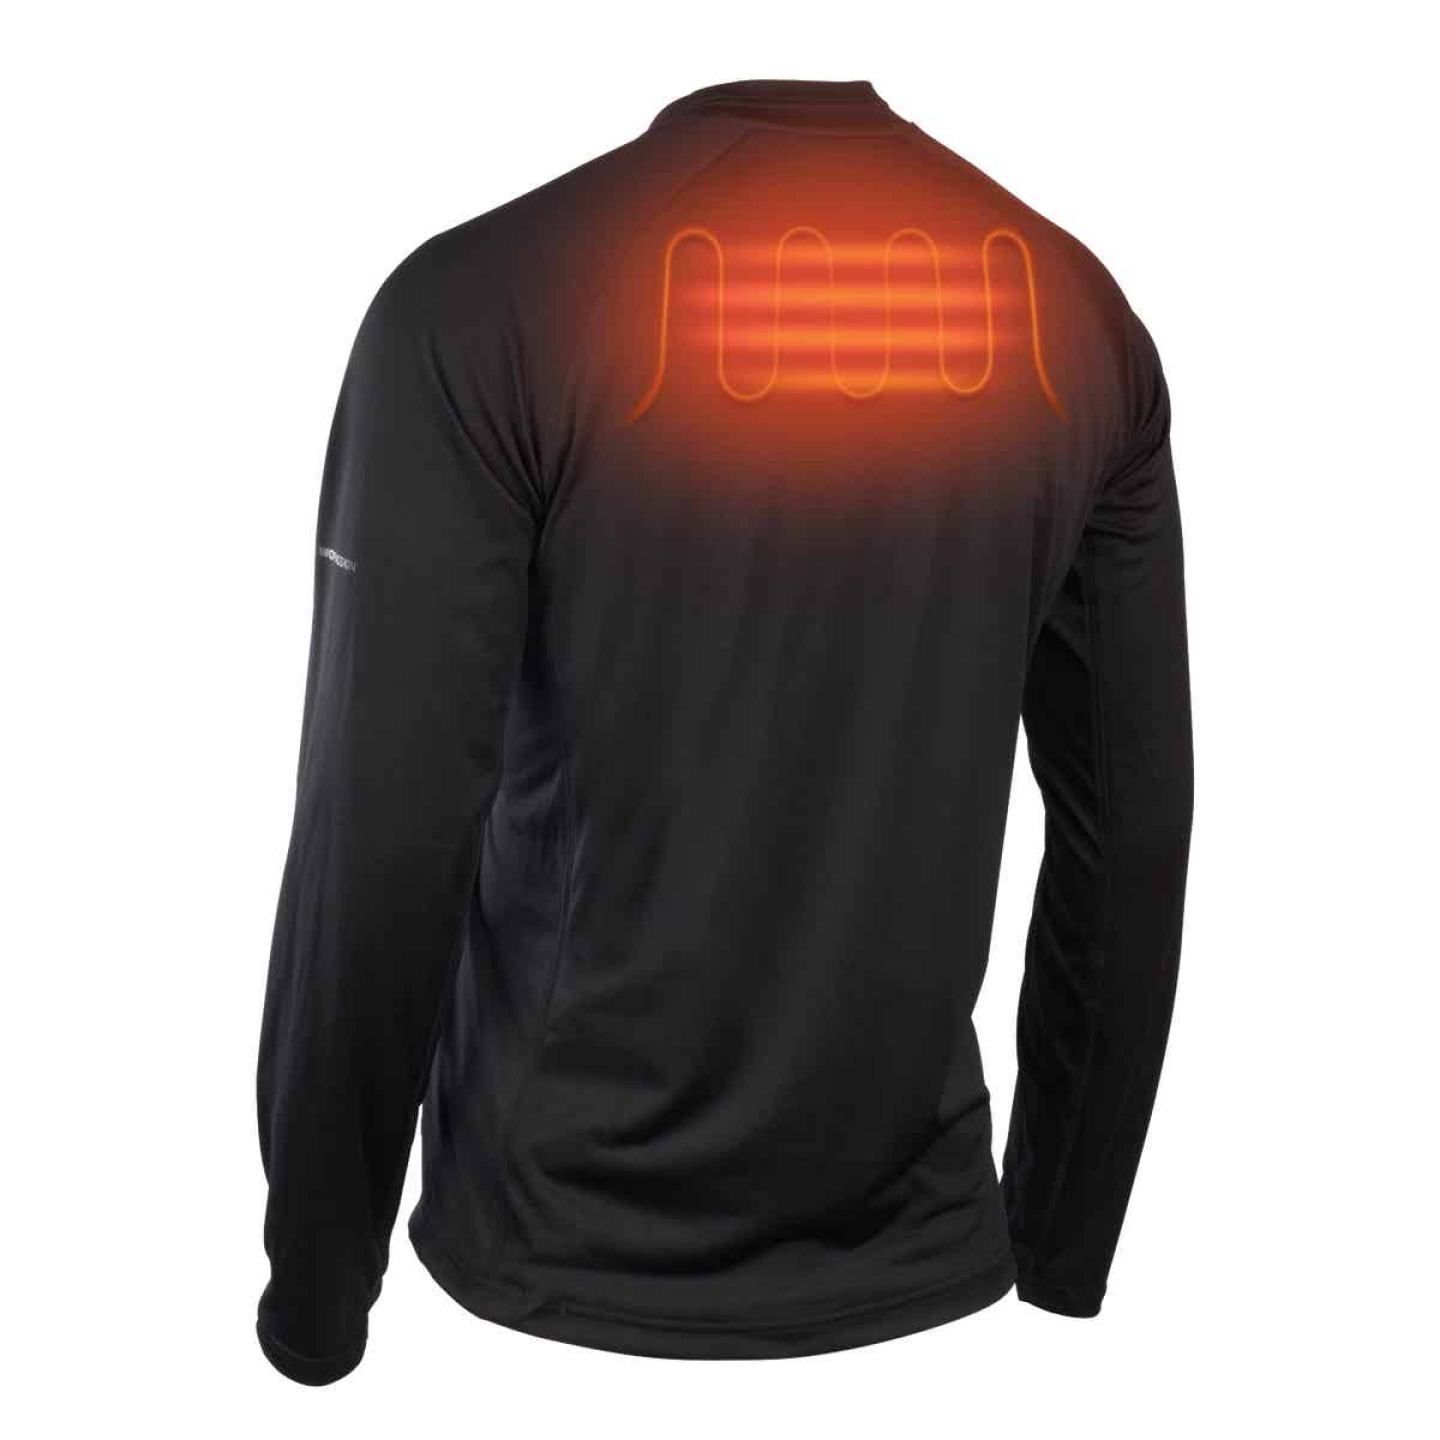 Milwaukee Workskin XL Black Heated Midweight Base Layer Shirt Image 9